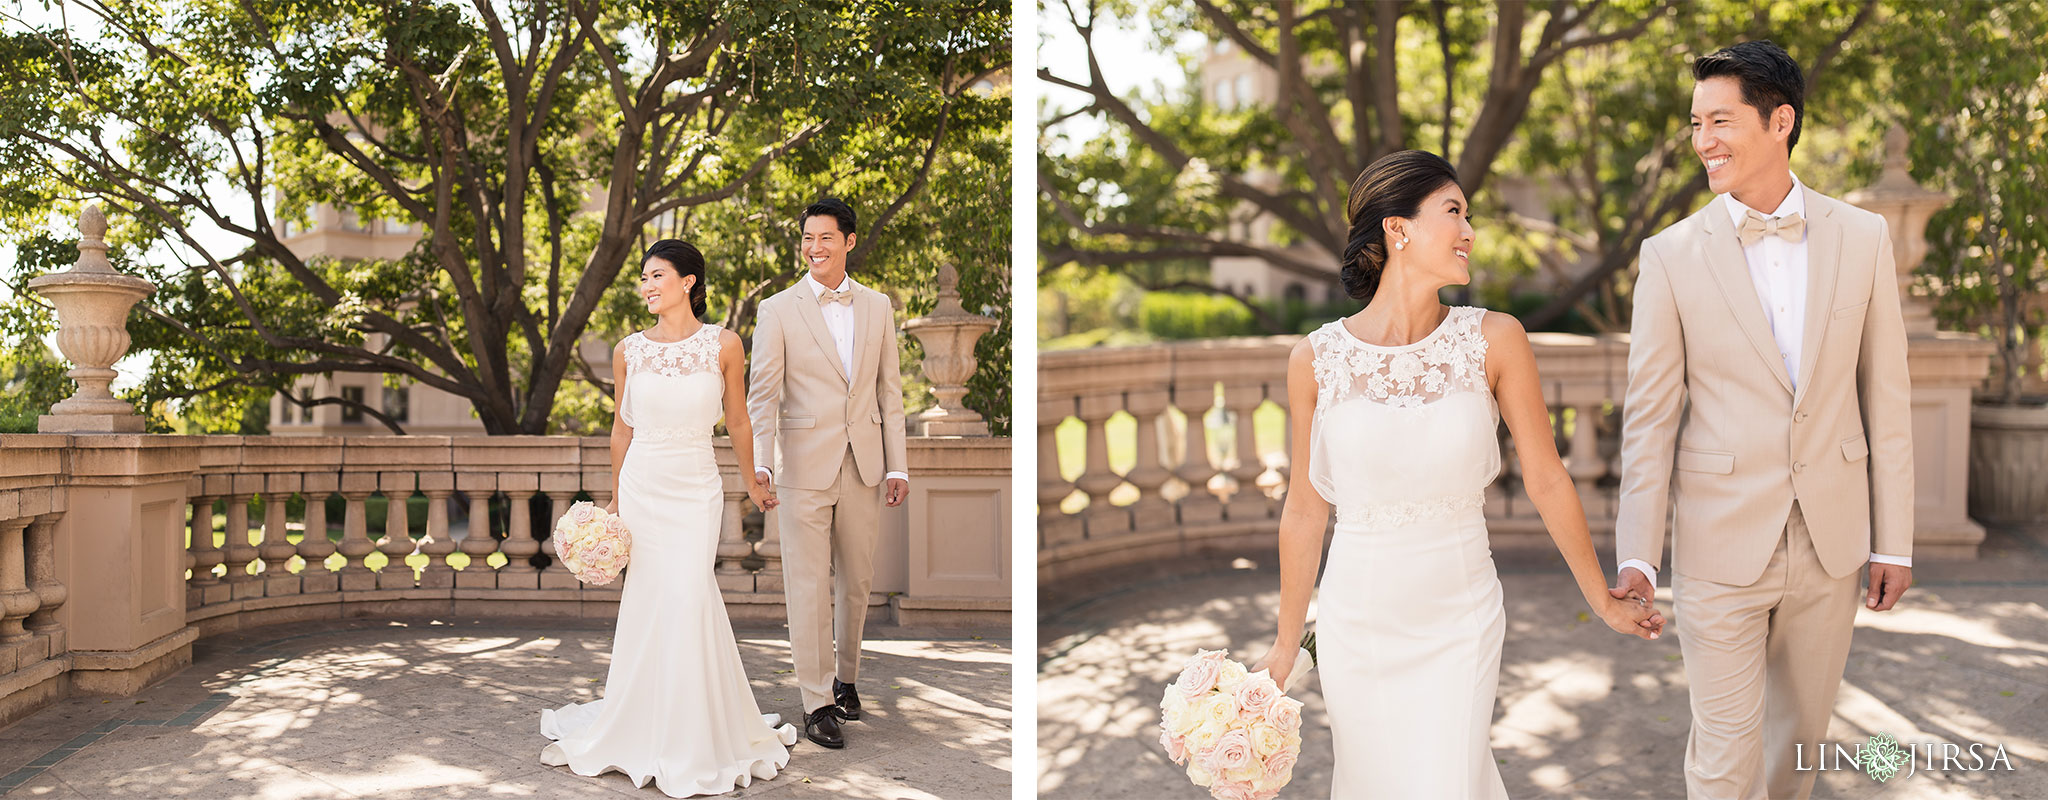 09 langham pasadena chinese couple wedding photography